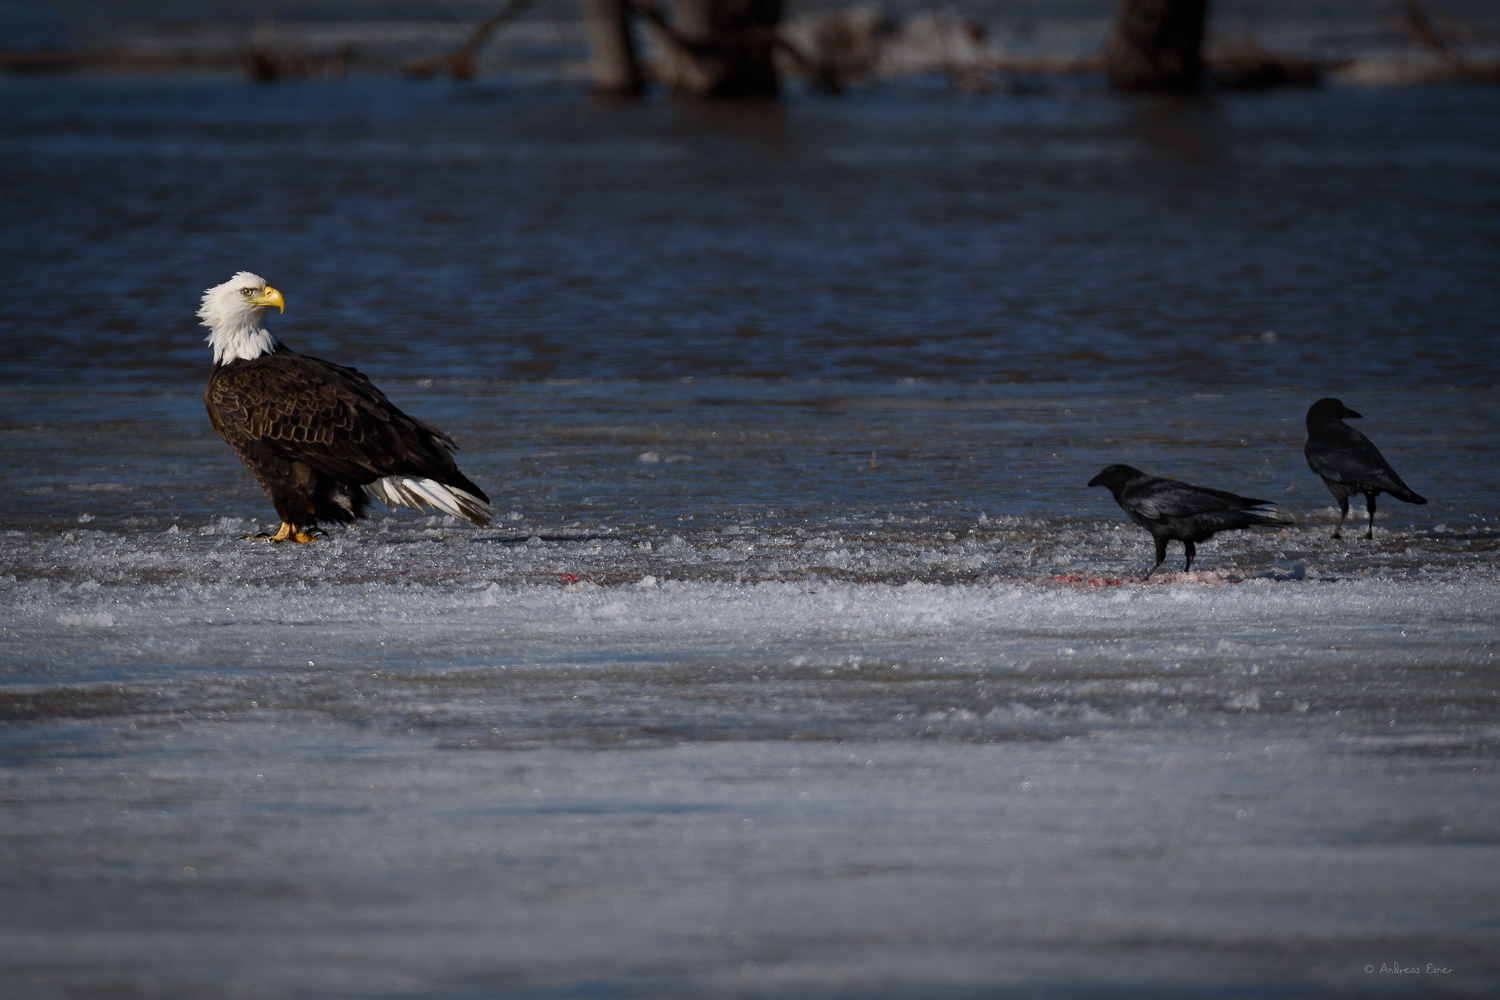 Crows picking up what's left of a an eagle's meal, Mississippi River, Sabula, Iowa